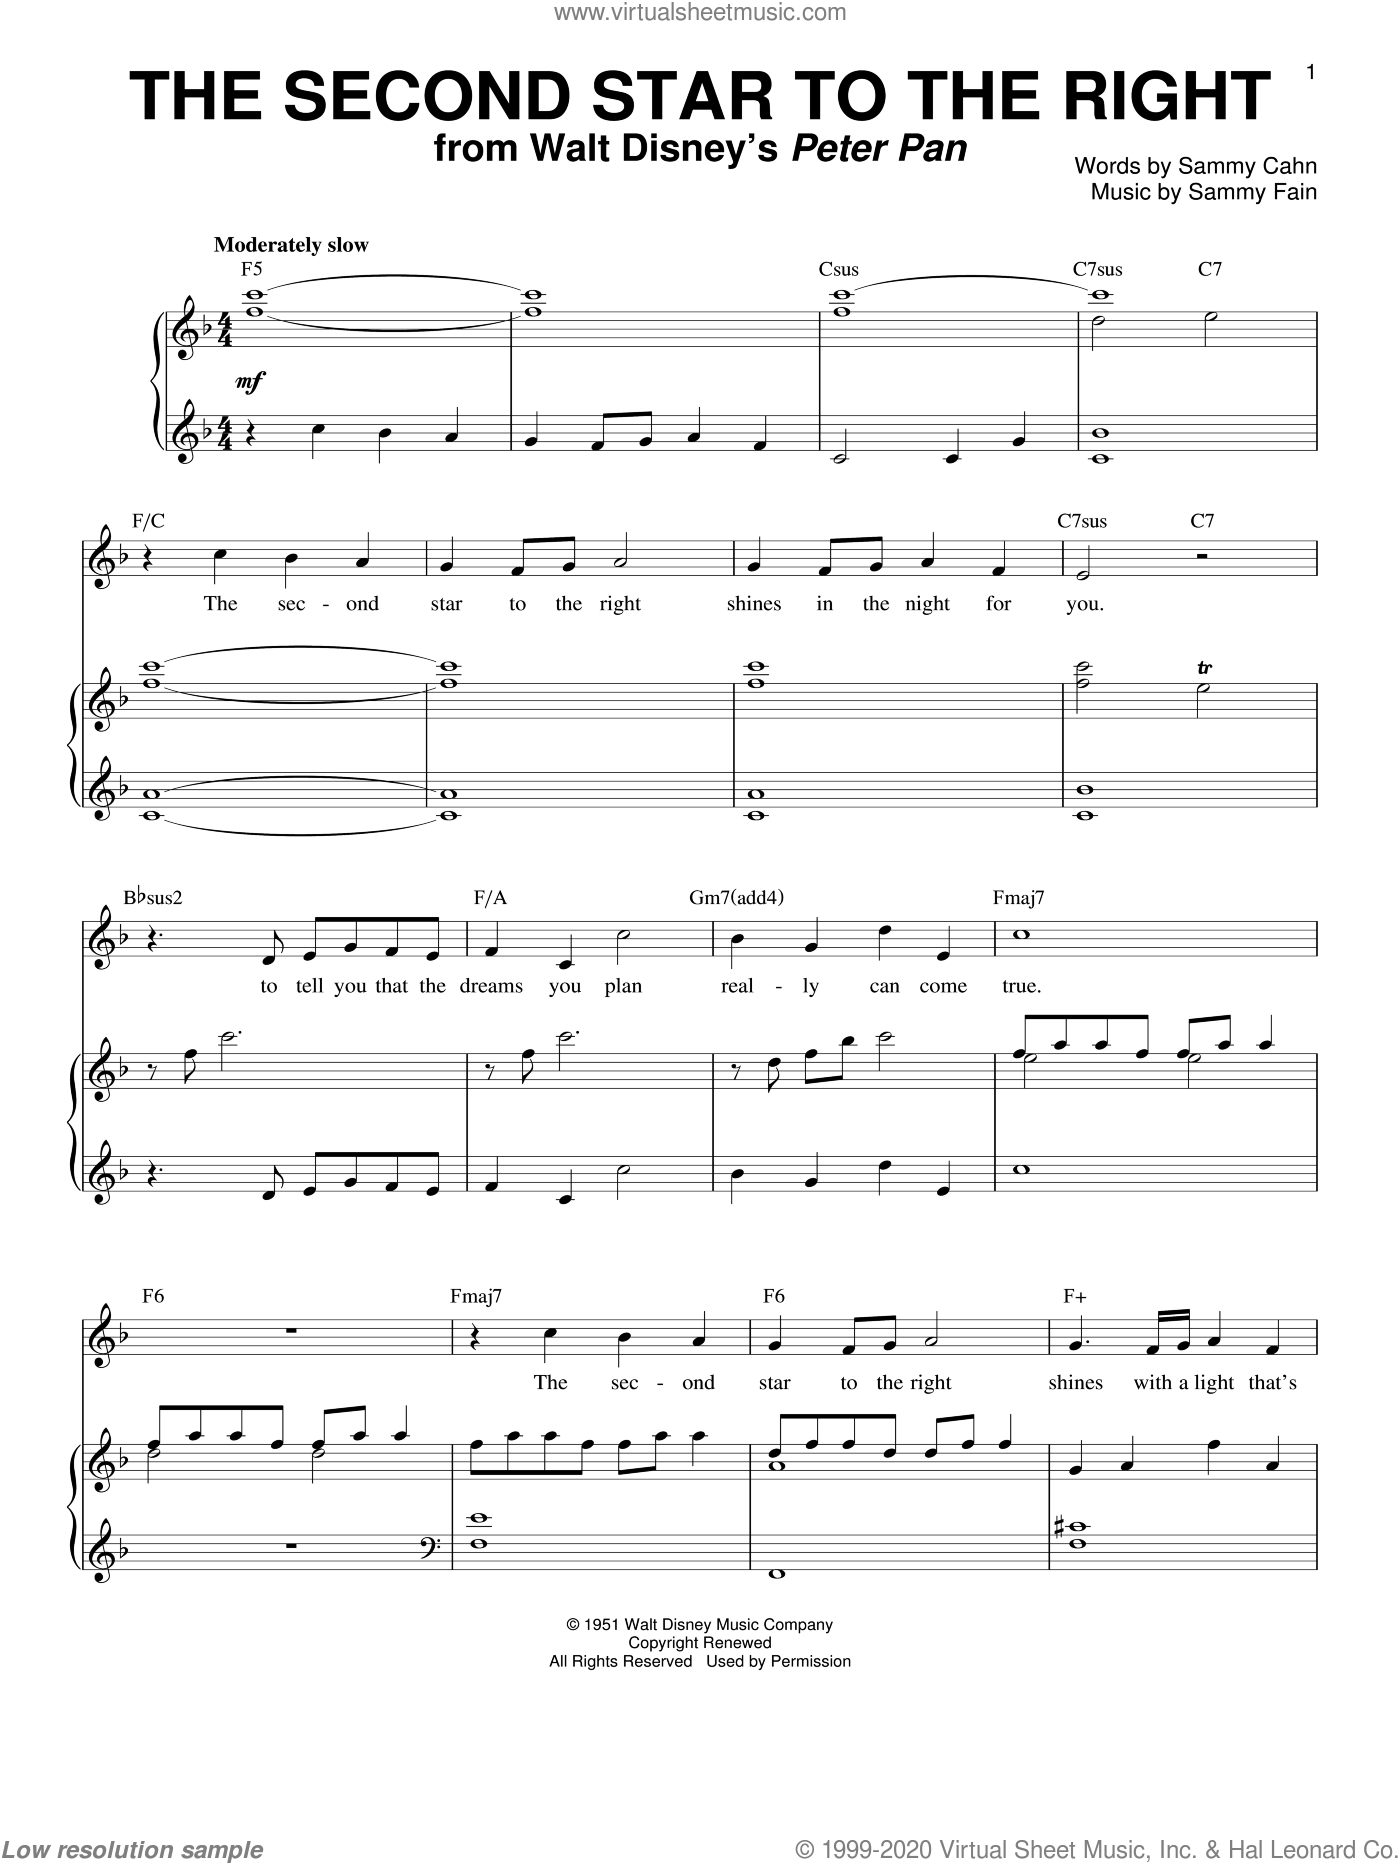 The Second Star To The Right sheet music for voice and piano by Sammy Fain